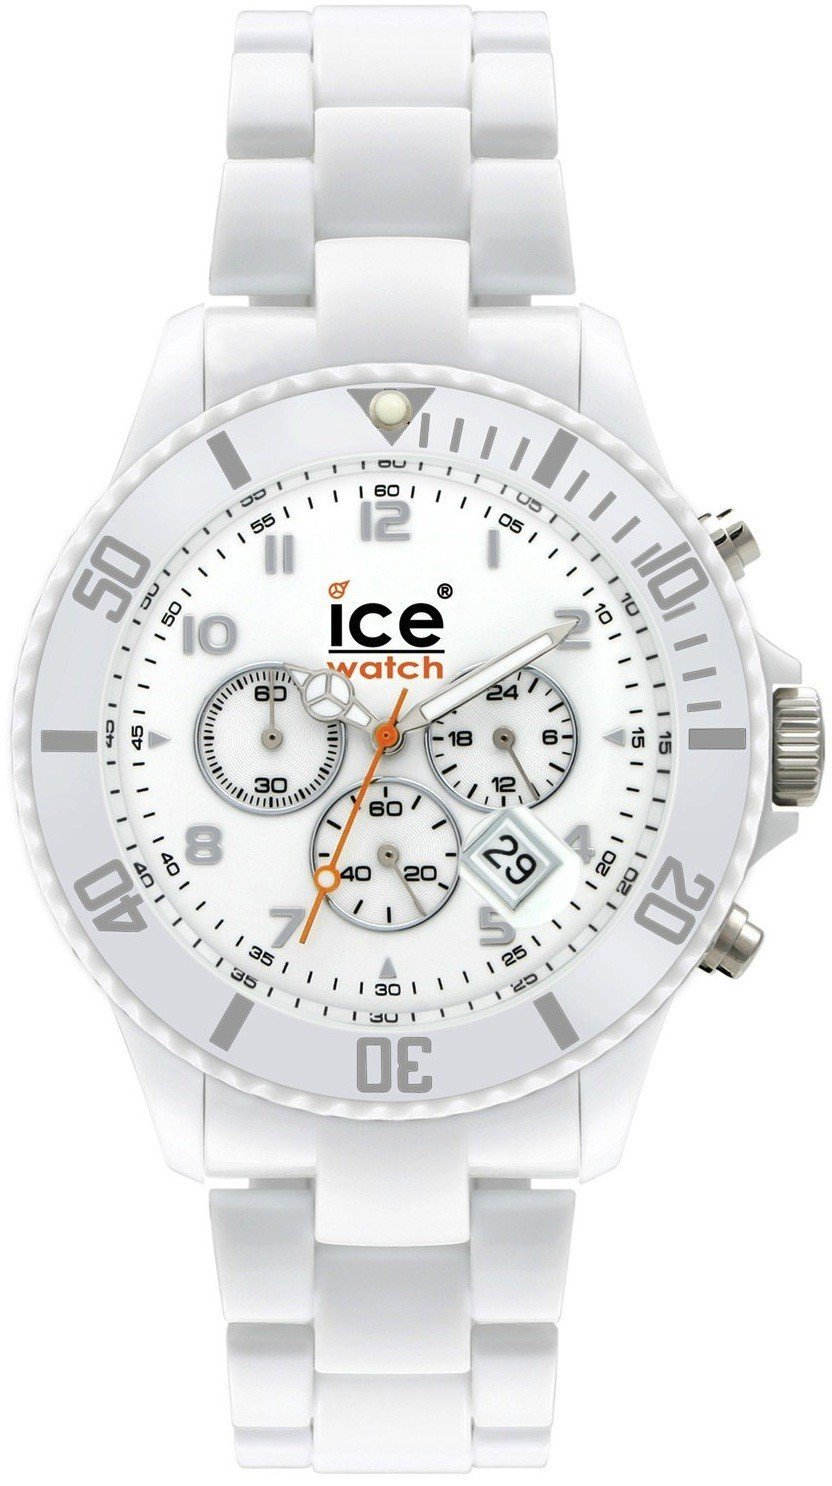 premium selection 8d50a e56a8 アイス 時計 Ice Watch Solid Big Chronograph for Him very sporty - 輸入時計専門店 ショップ  タイムズ 通販